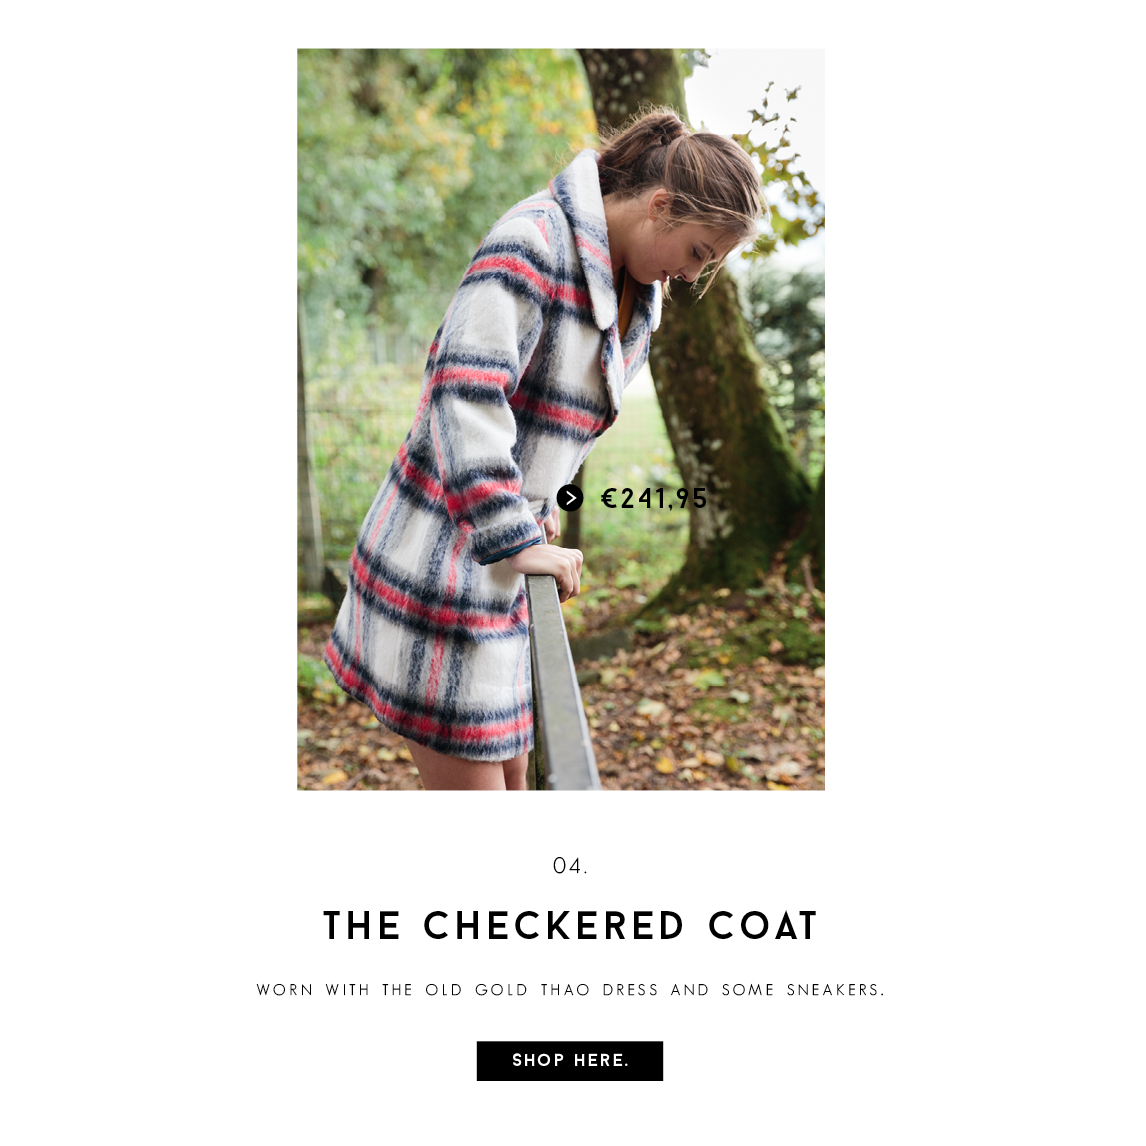 http://shoplily.be/collections/fall-getaway/products/checkered-jacket?variant=30556822215